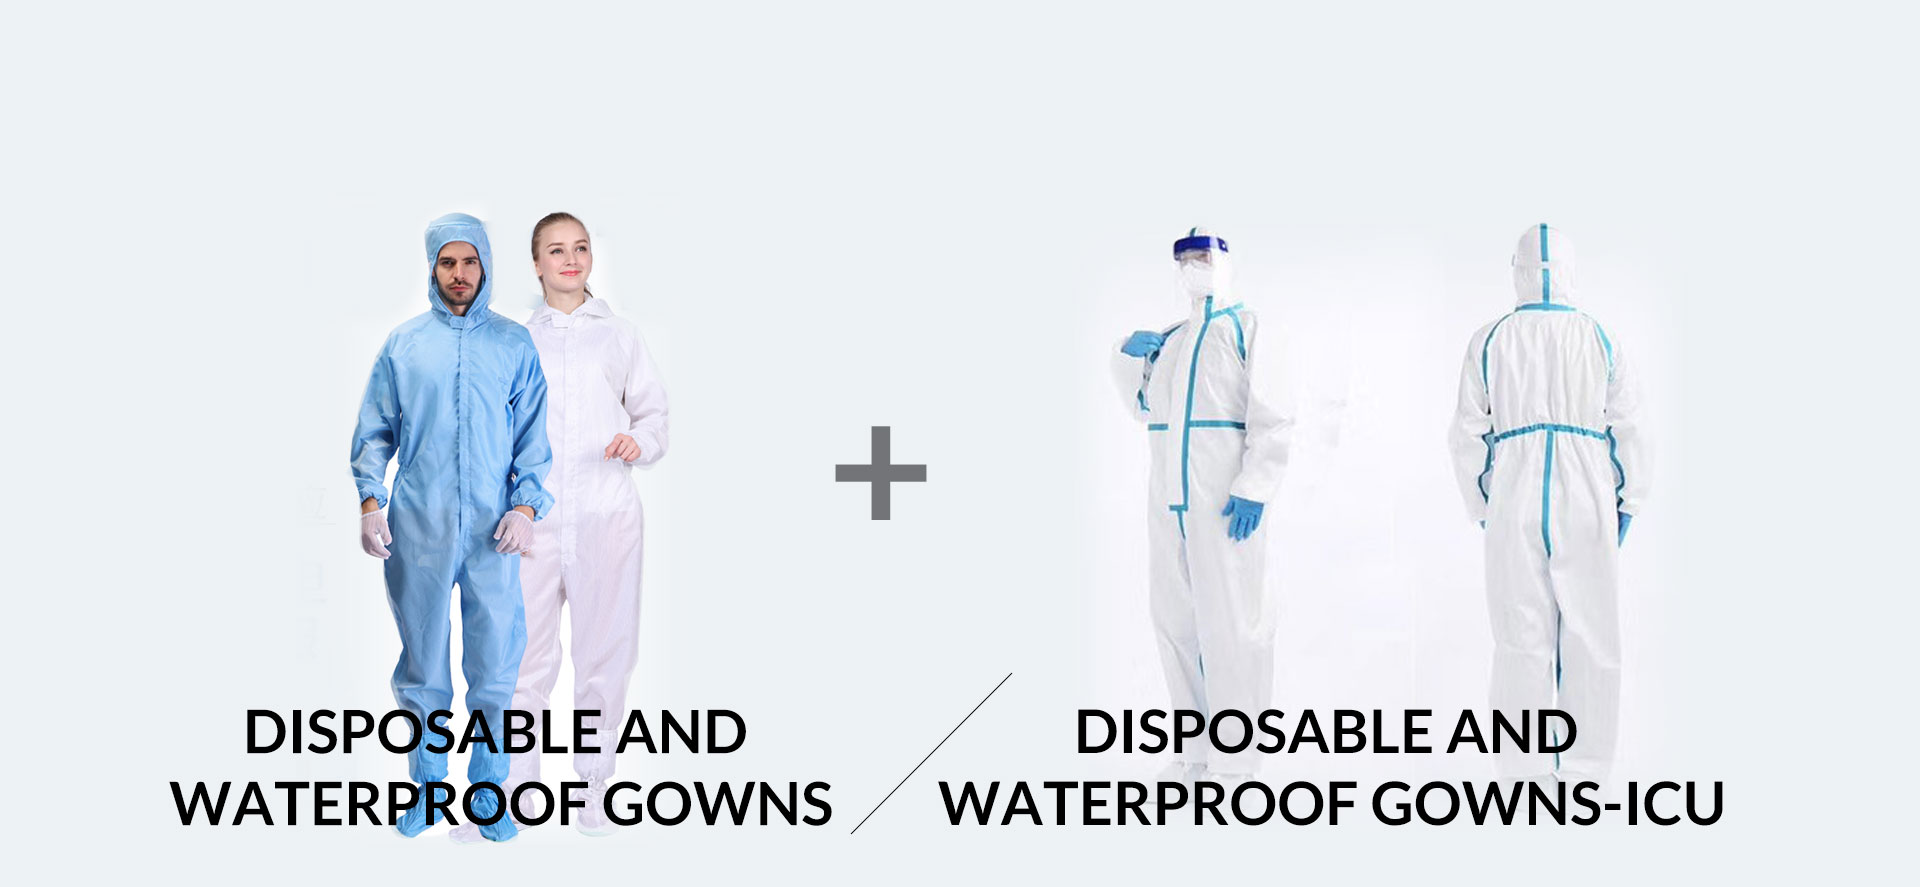 waterproof gowns